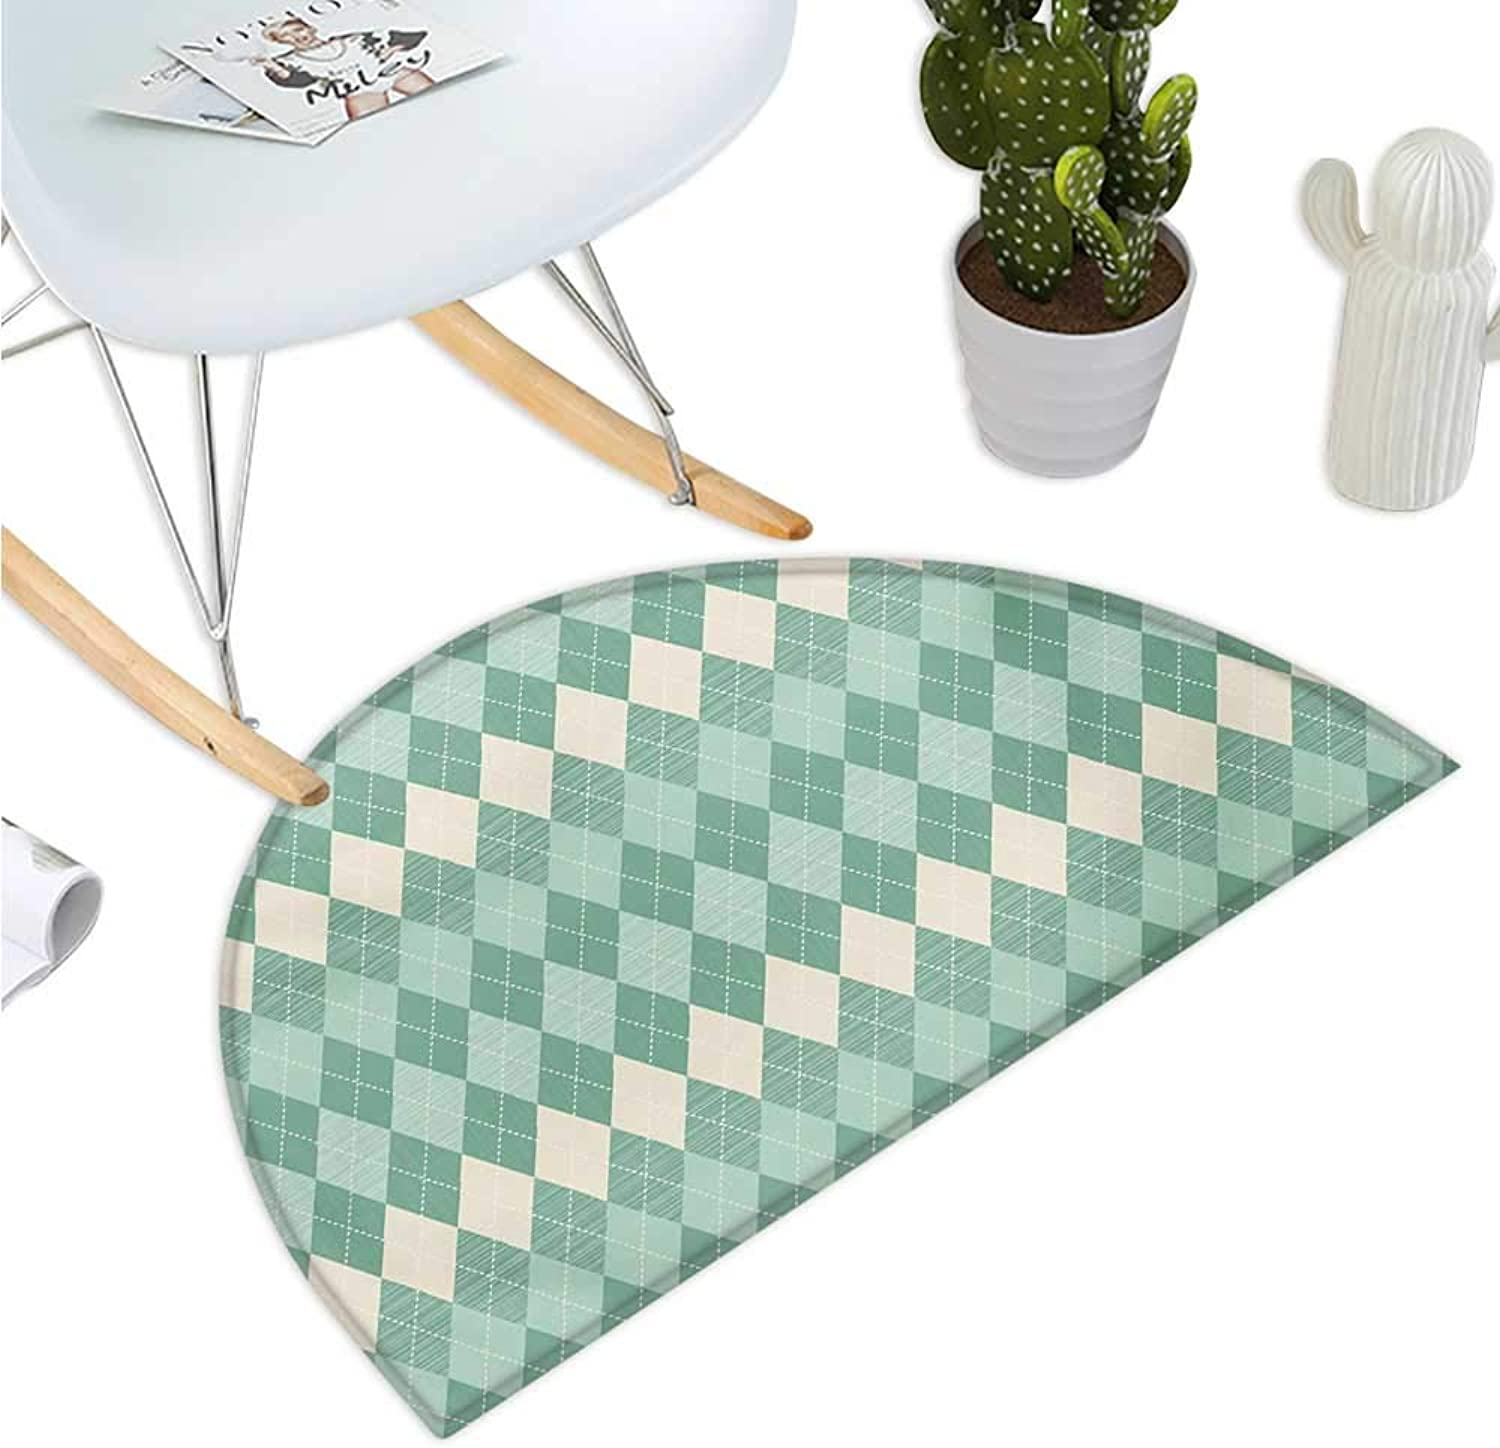 Aqua Half Round Door mats Rectangular Triangle Shapes Abstract Design Sketchy Lines Bathroom Mat H 51.1  xD 76.7  White Seafoam Pale bluee and Turquoise